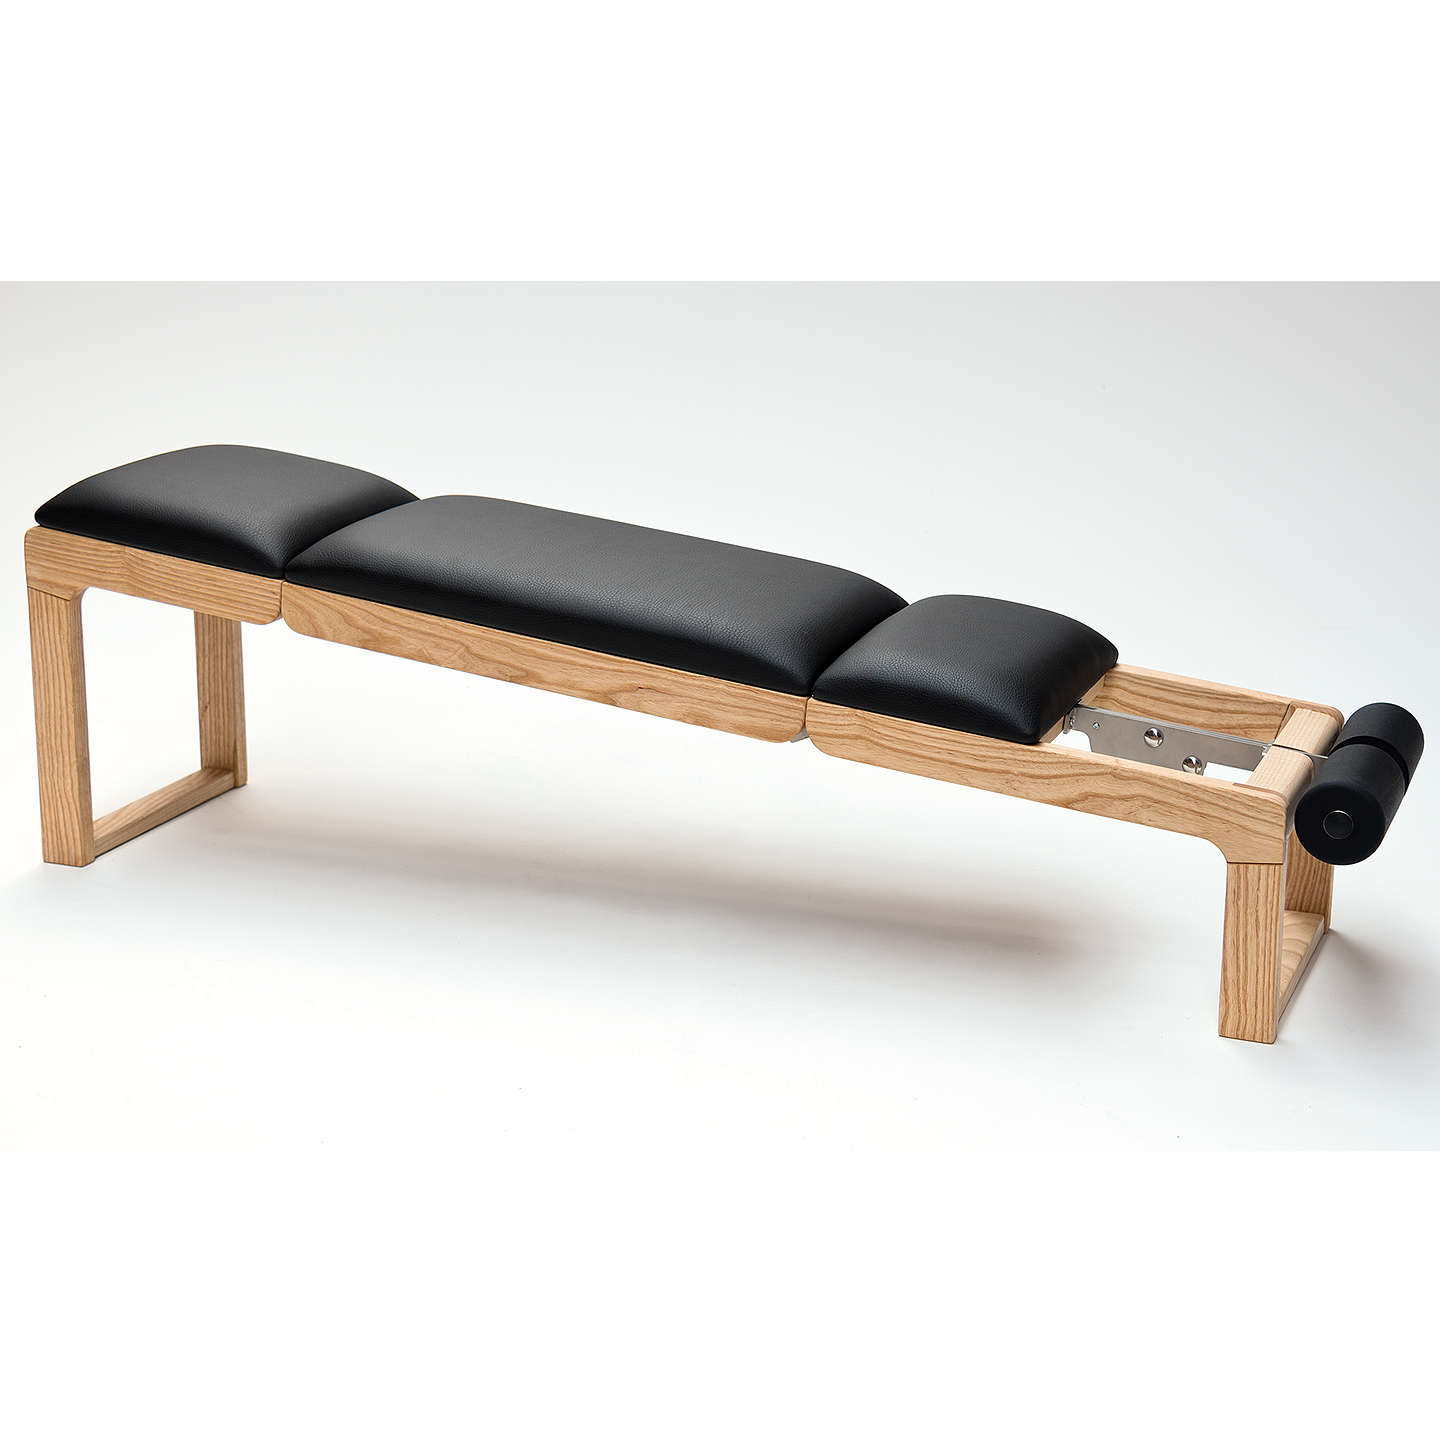 BuyNOHrD by WaterRower Bench, Oak Online at johnlewis.com